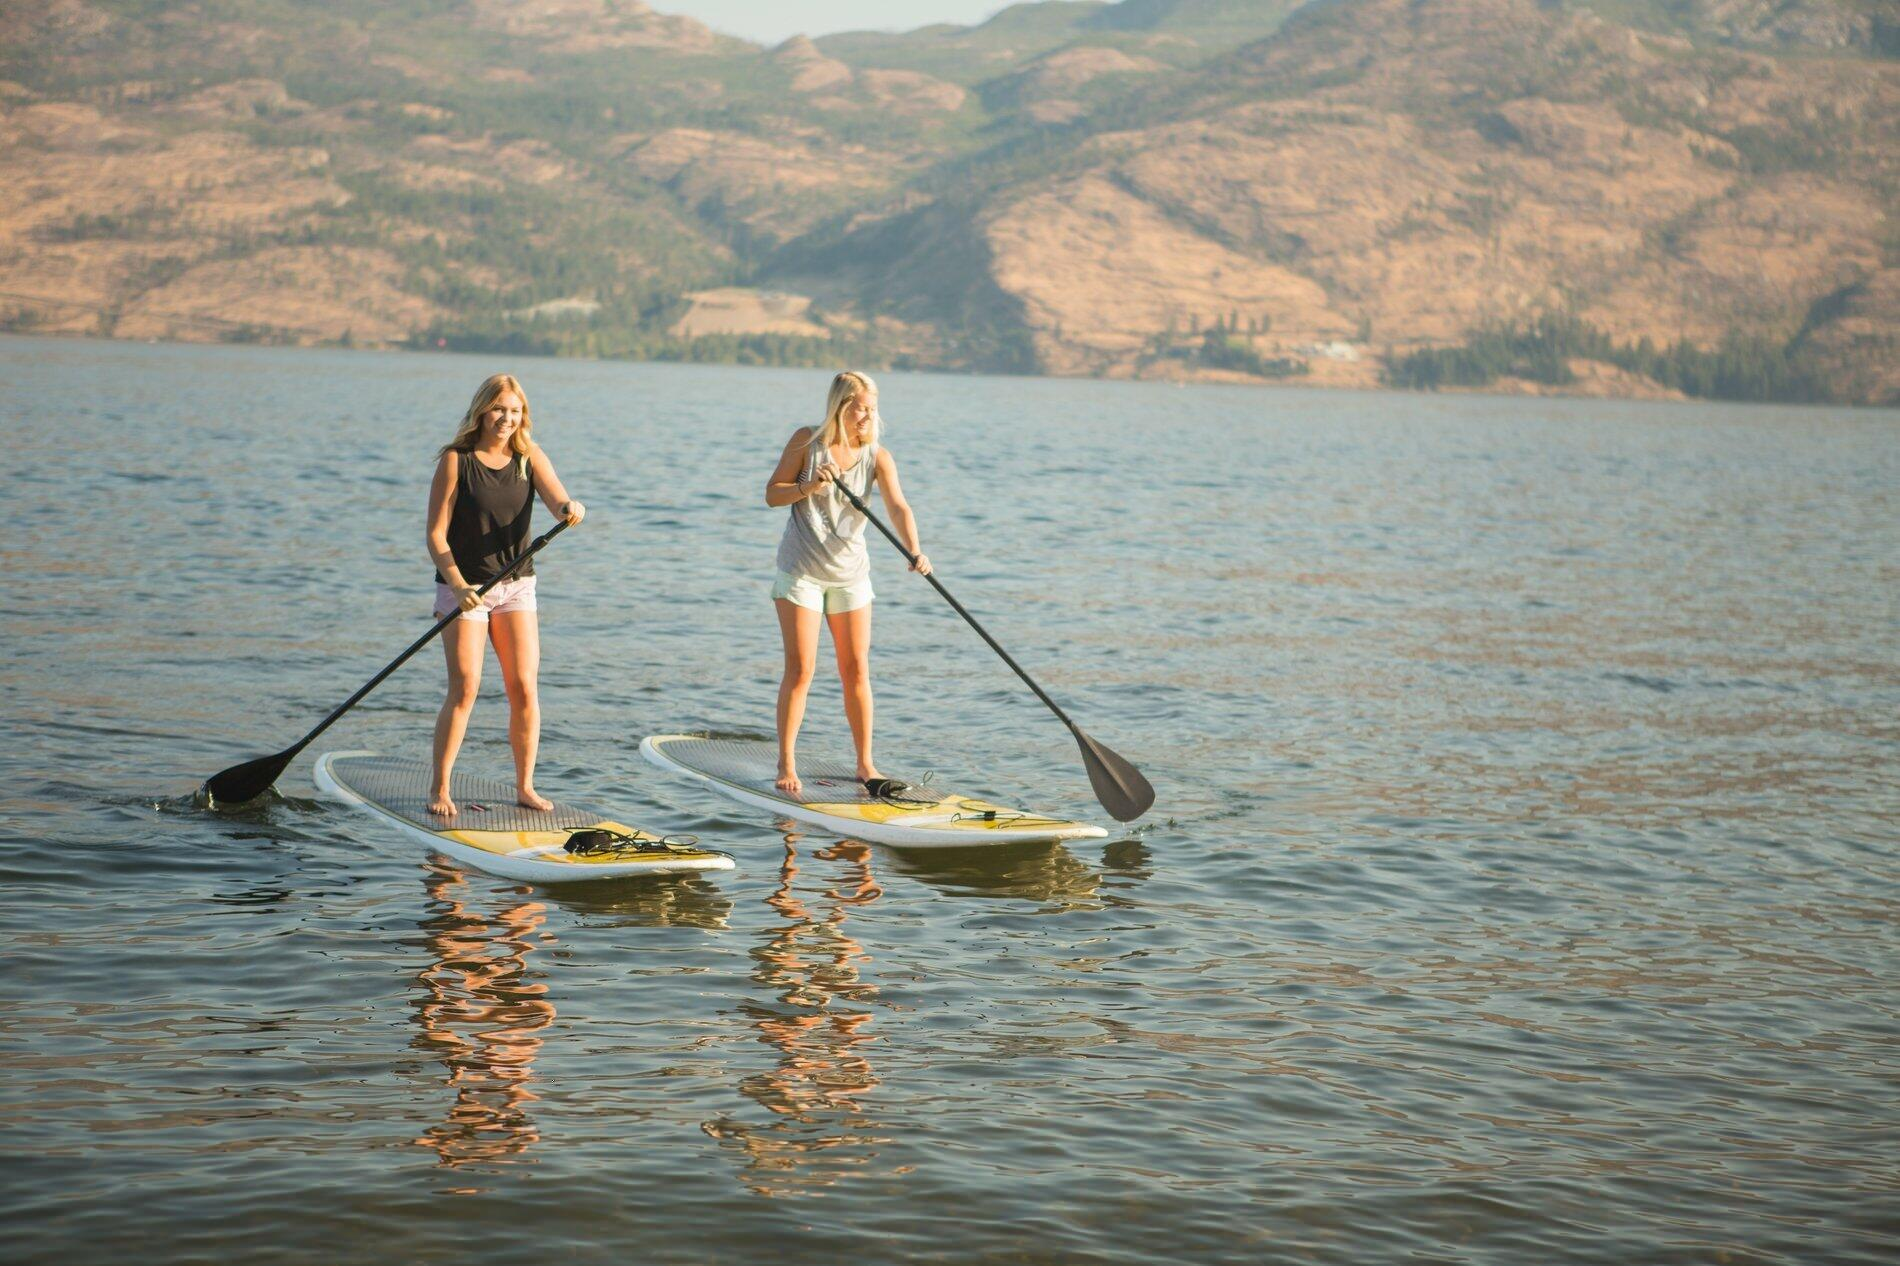 Duo on paddleboards on the lake